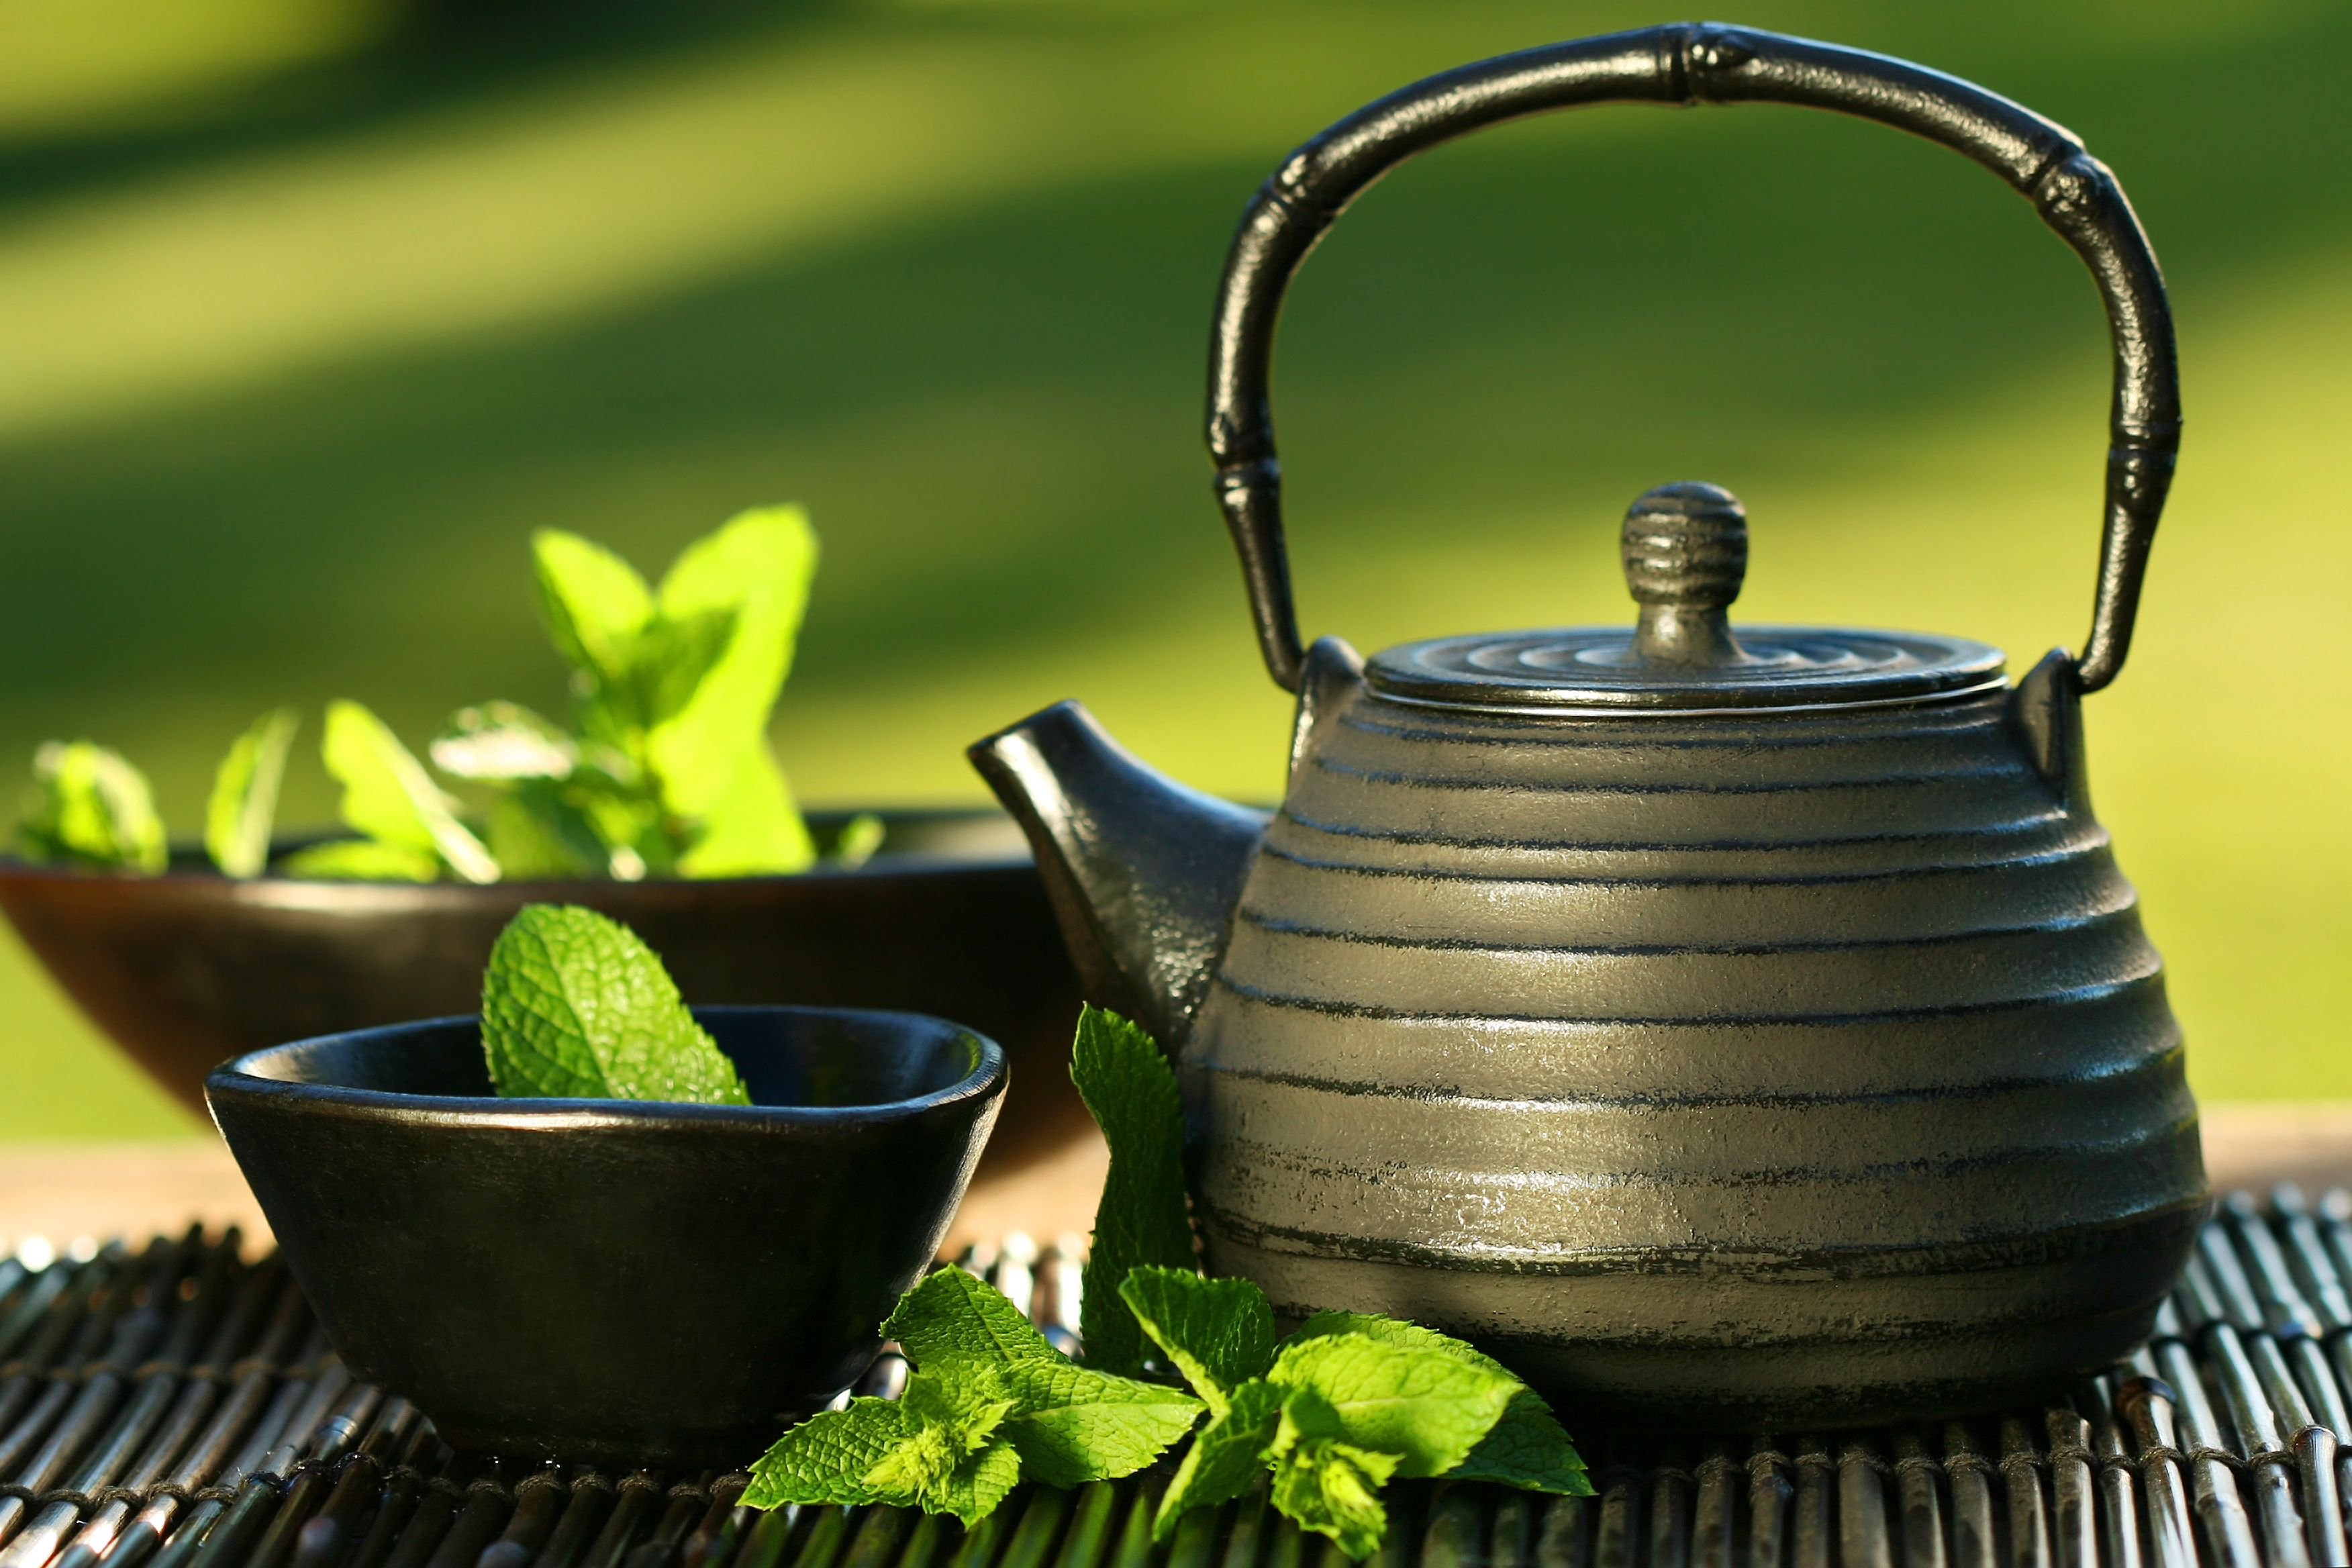 Tea in a traditional cast-iron tetsubin teapot.